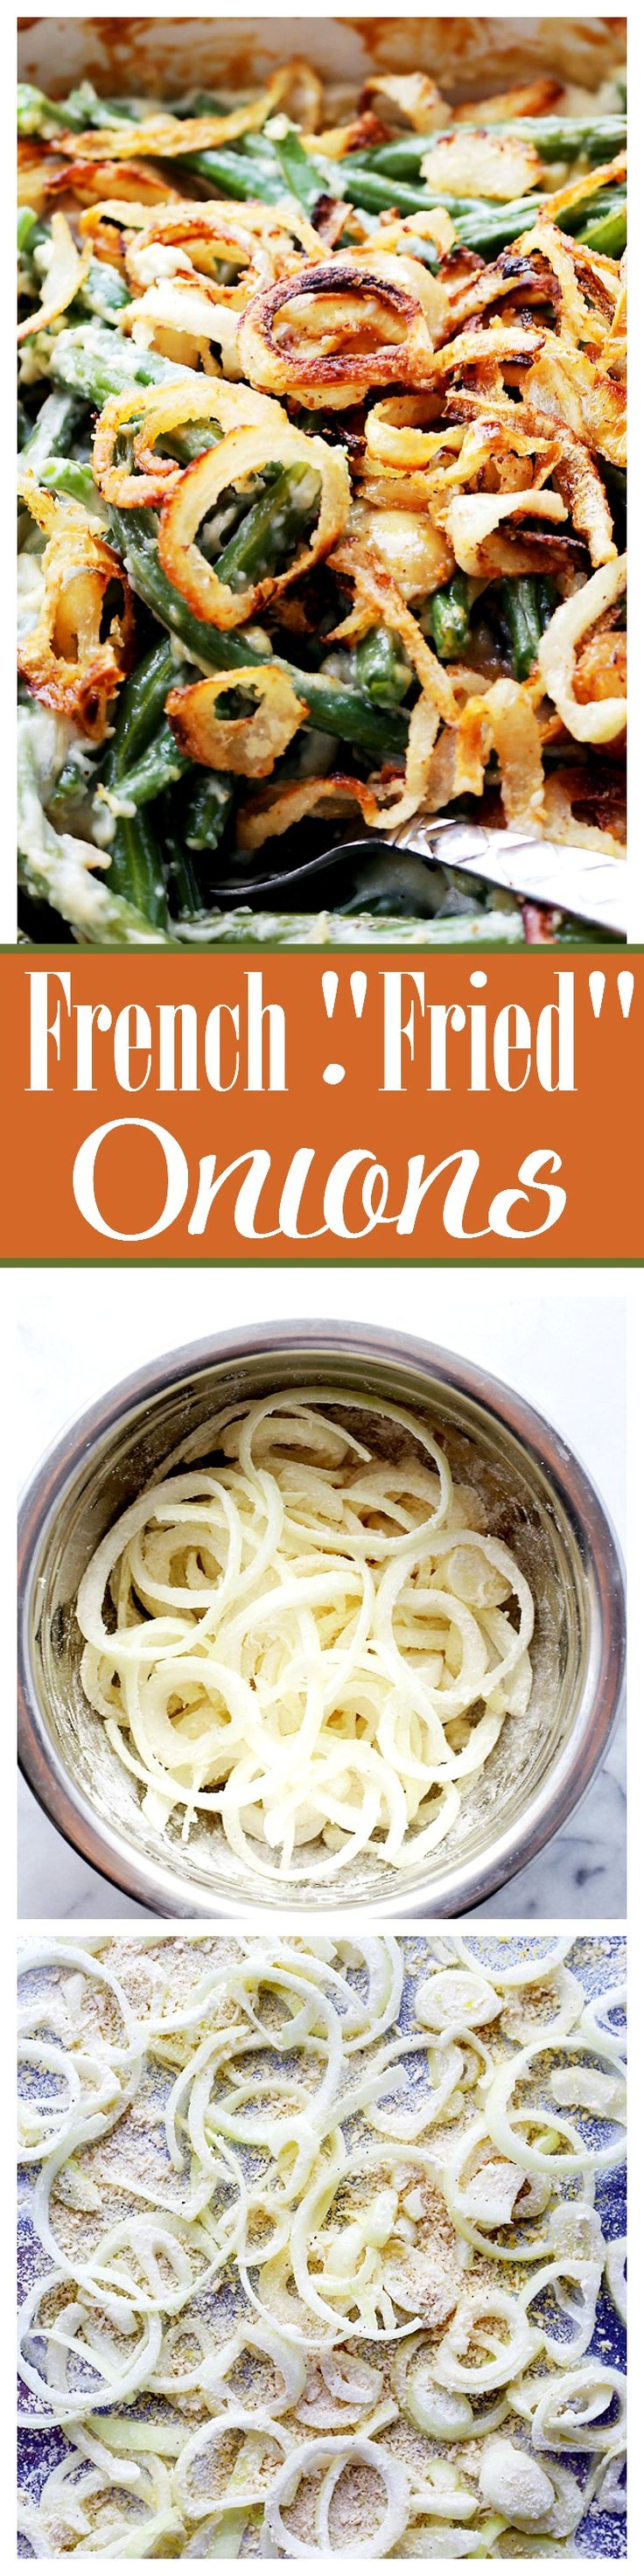 """Homemade French """"Fried"""" Onions Topping - A delicious homemade AND baked alternative to those store-bought French Fried Onions."""